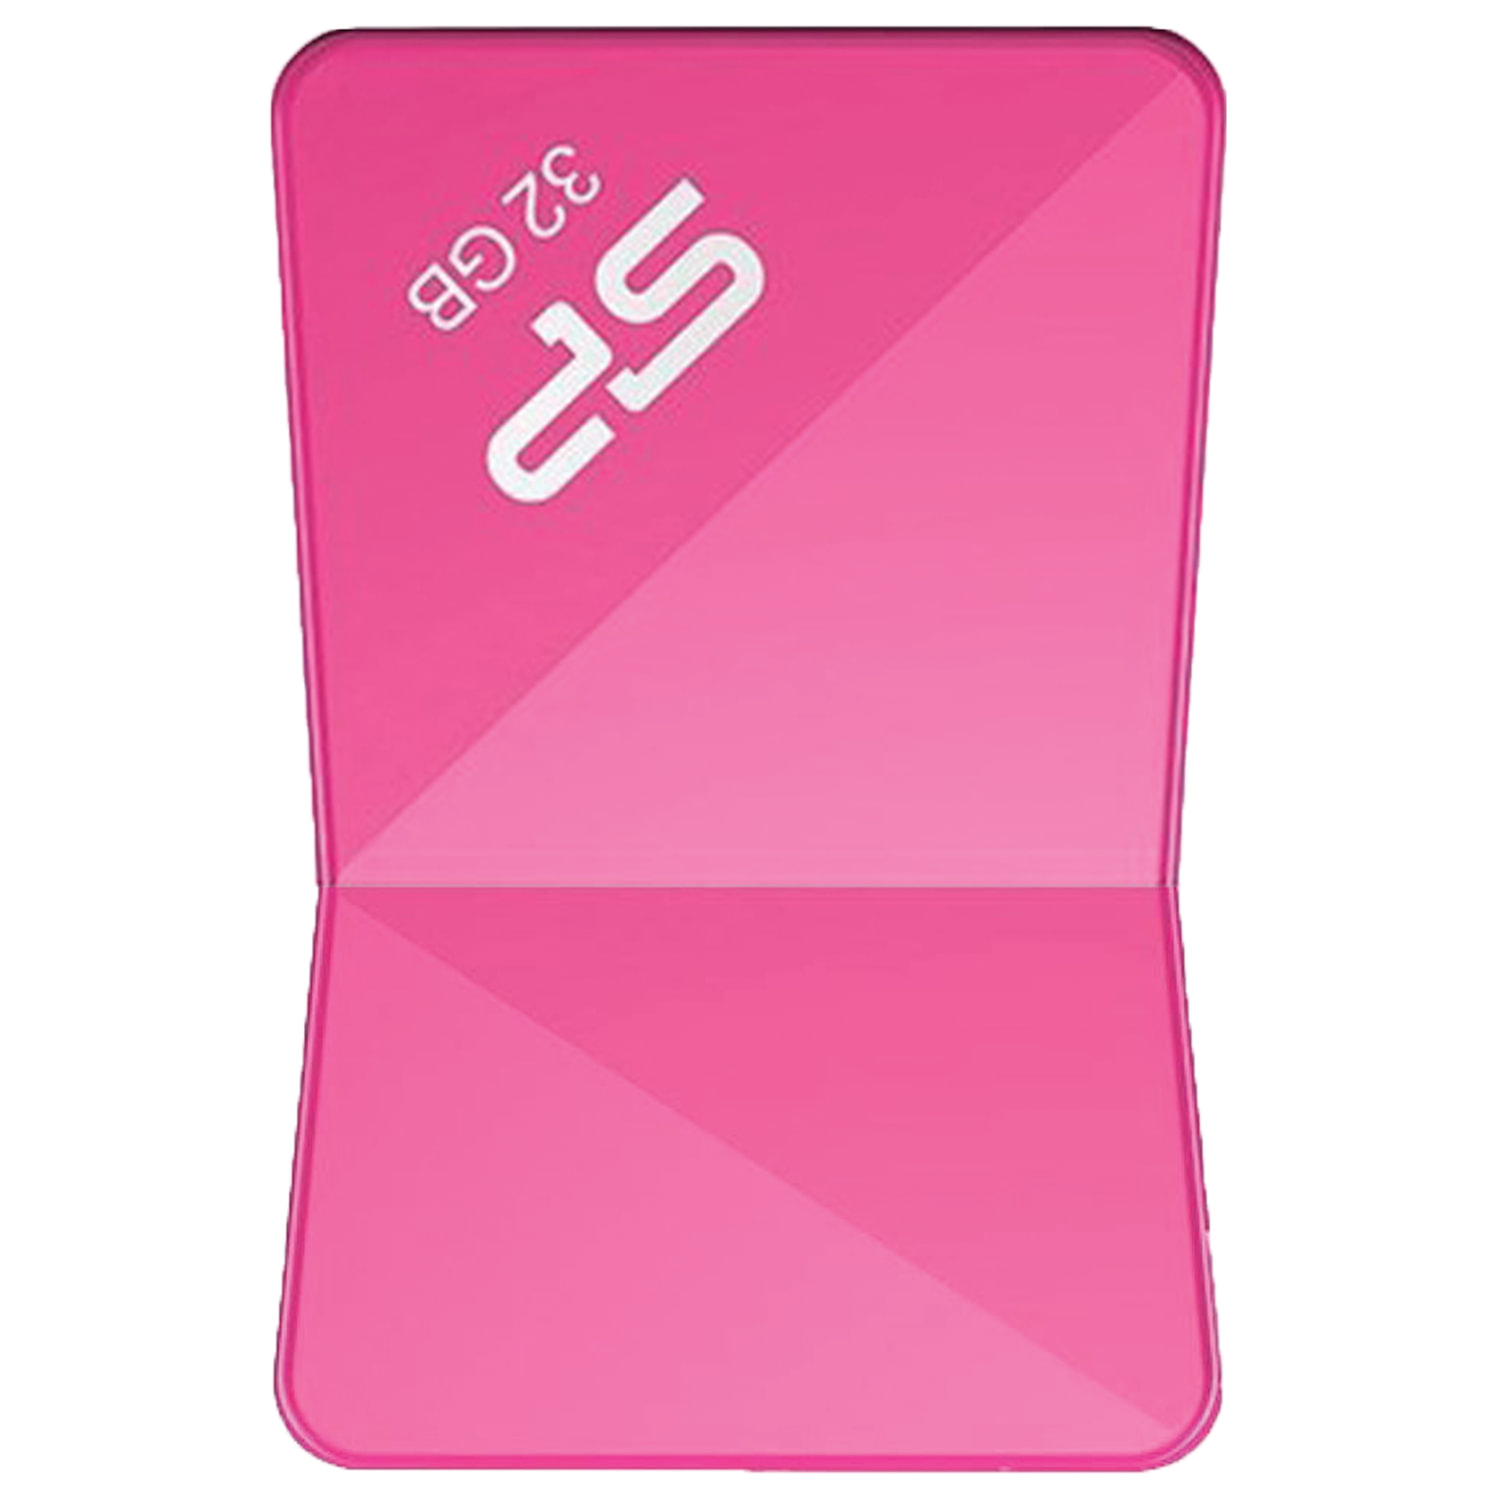 Флеш-диск 32 GB SILICON POWER Touch T08 USB 2.0, розовый, SP32GBUF2T08V1H